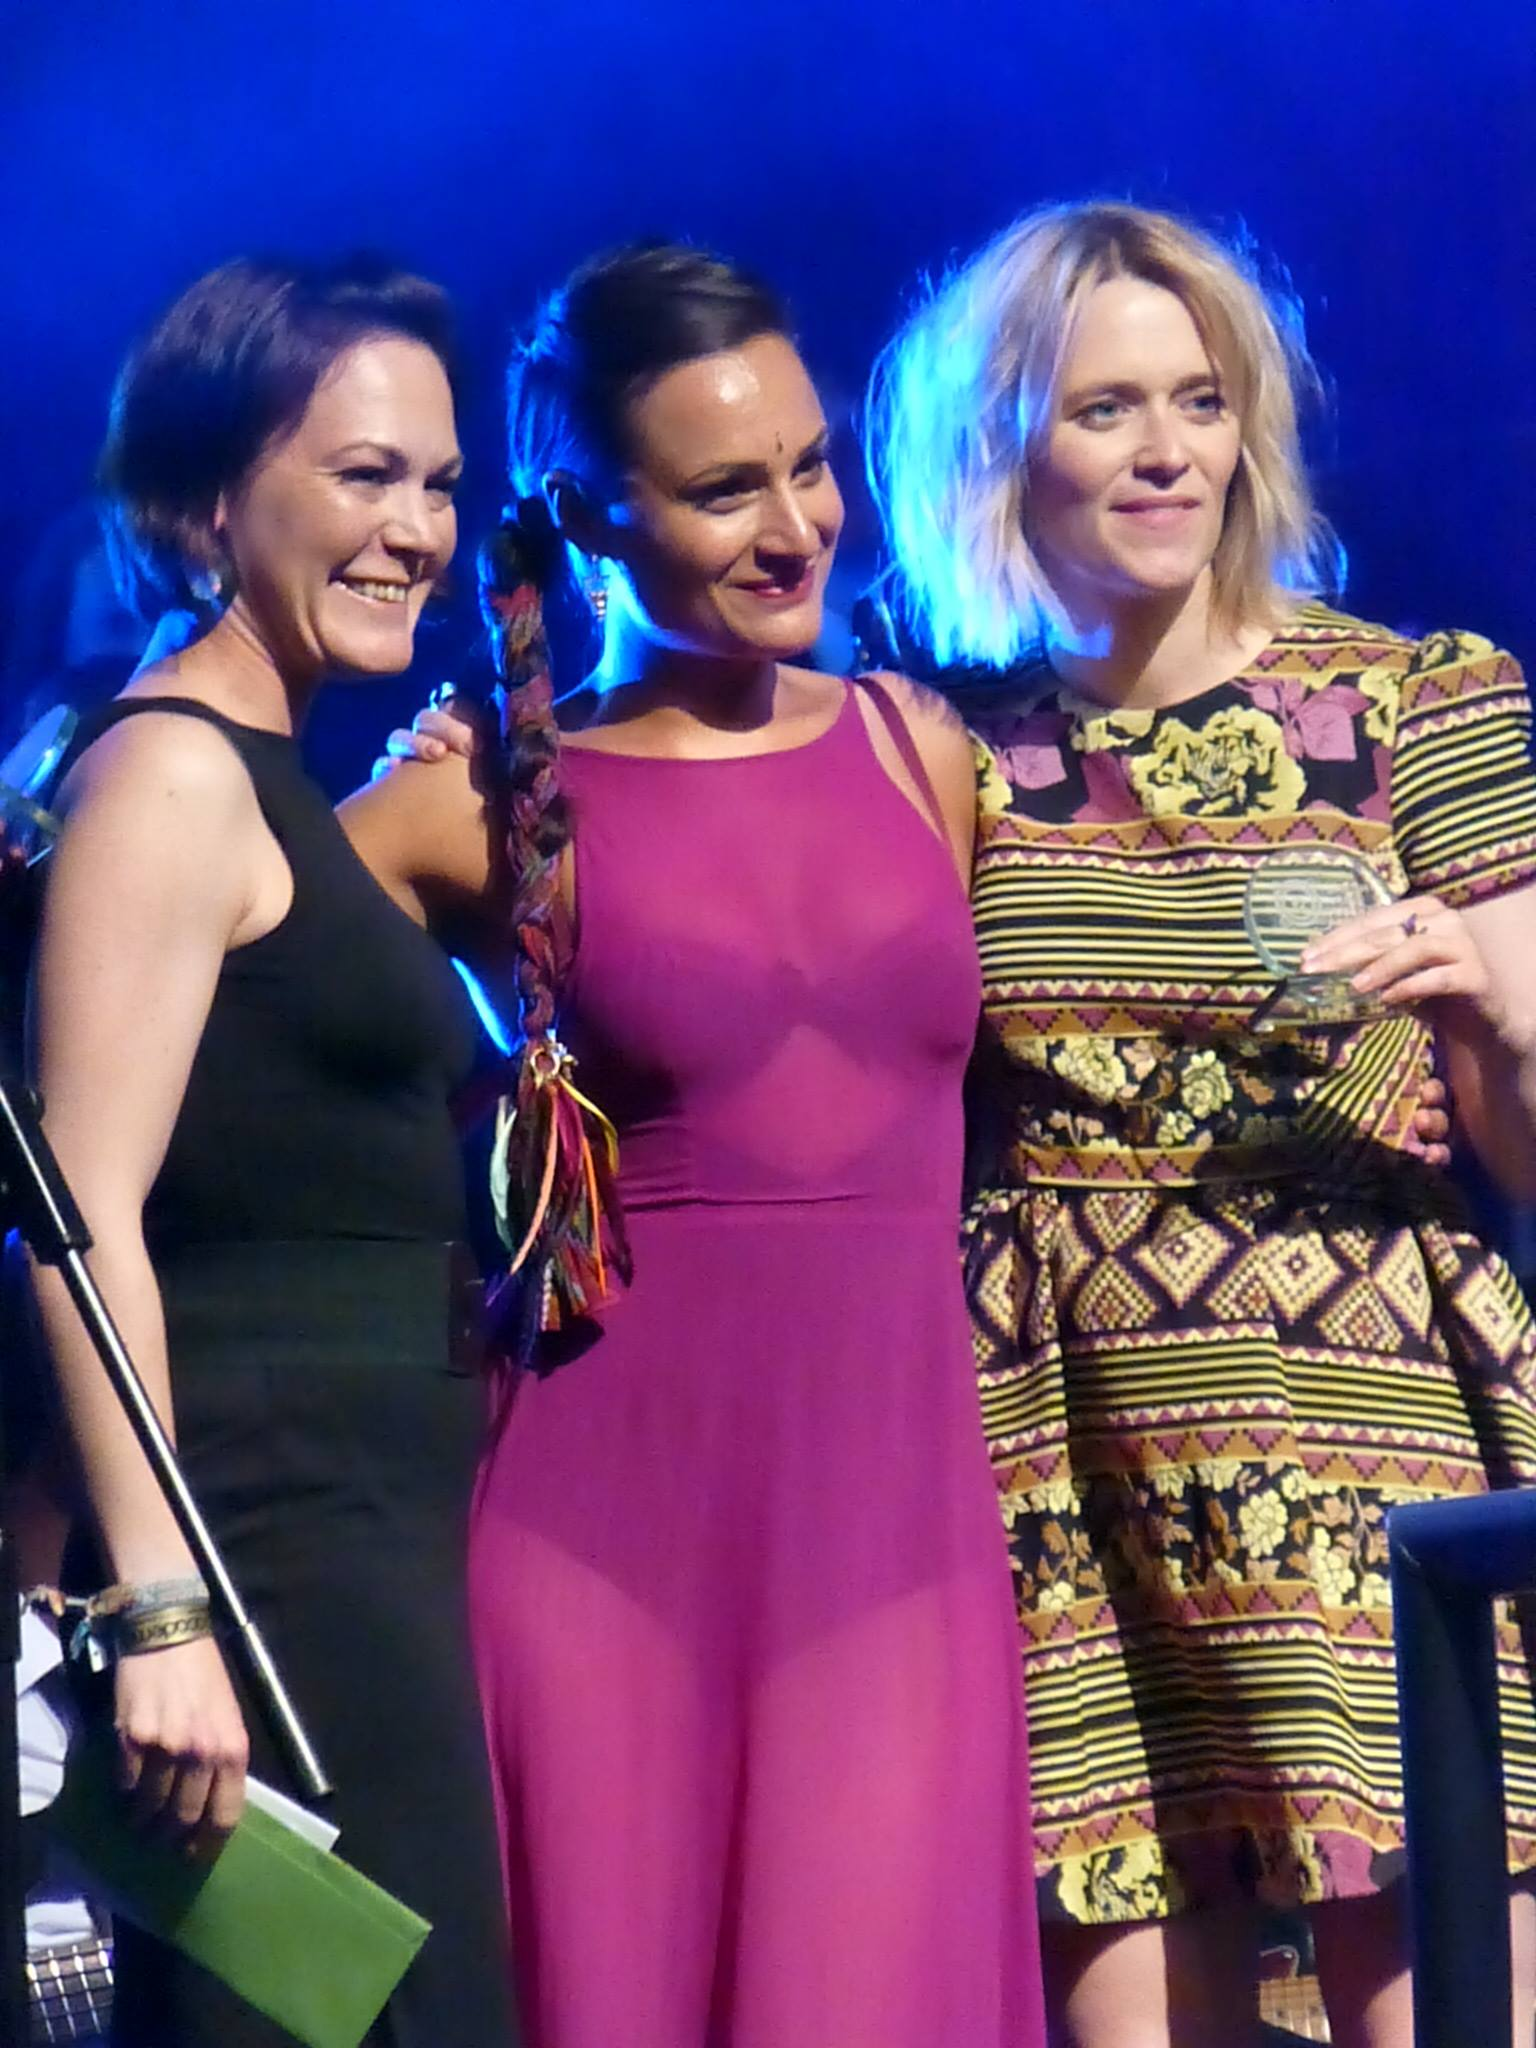 PERFORMANCE AWARD PRESENTED BY EDITH BOWMAN FROM BBC -